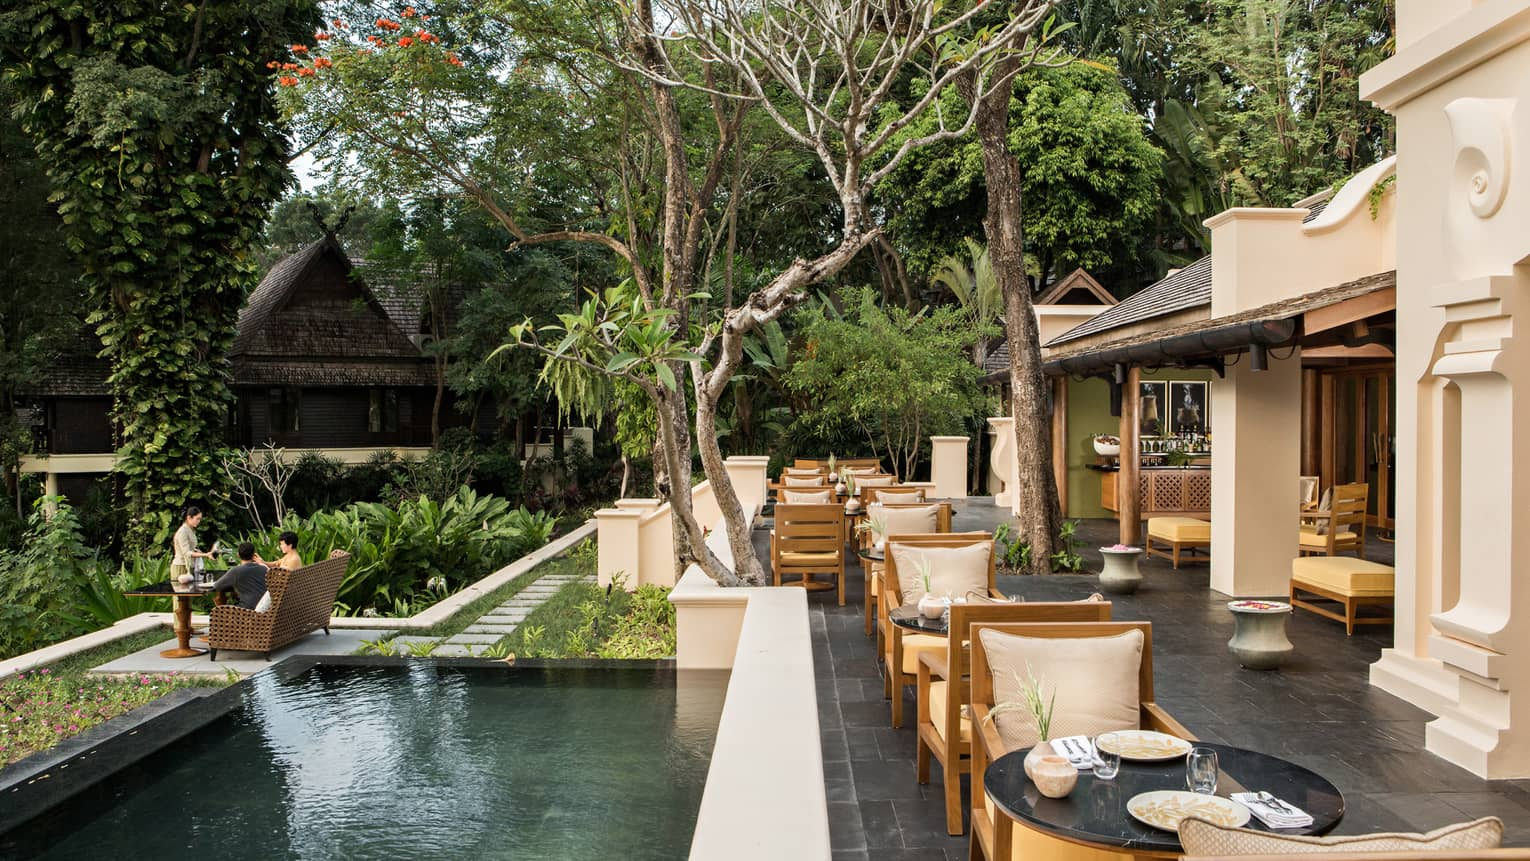 KHAO slate patio under shade of trees, long fountain by dining tables near large white columns